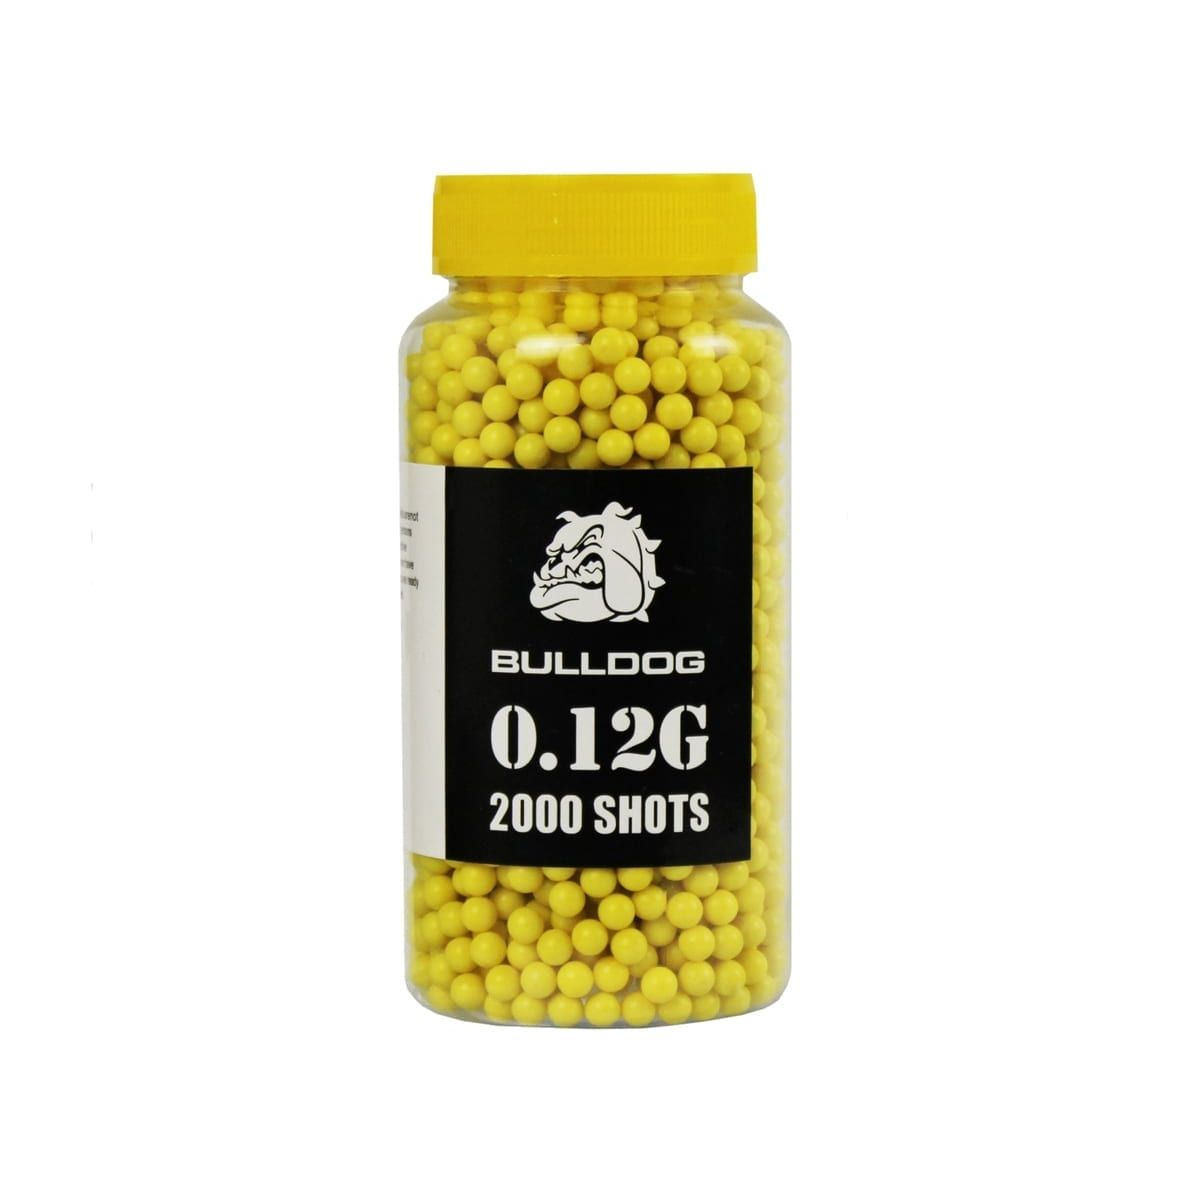 Bulldog BB .12G 2000 Pellets